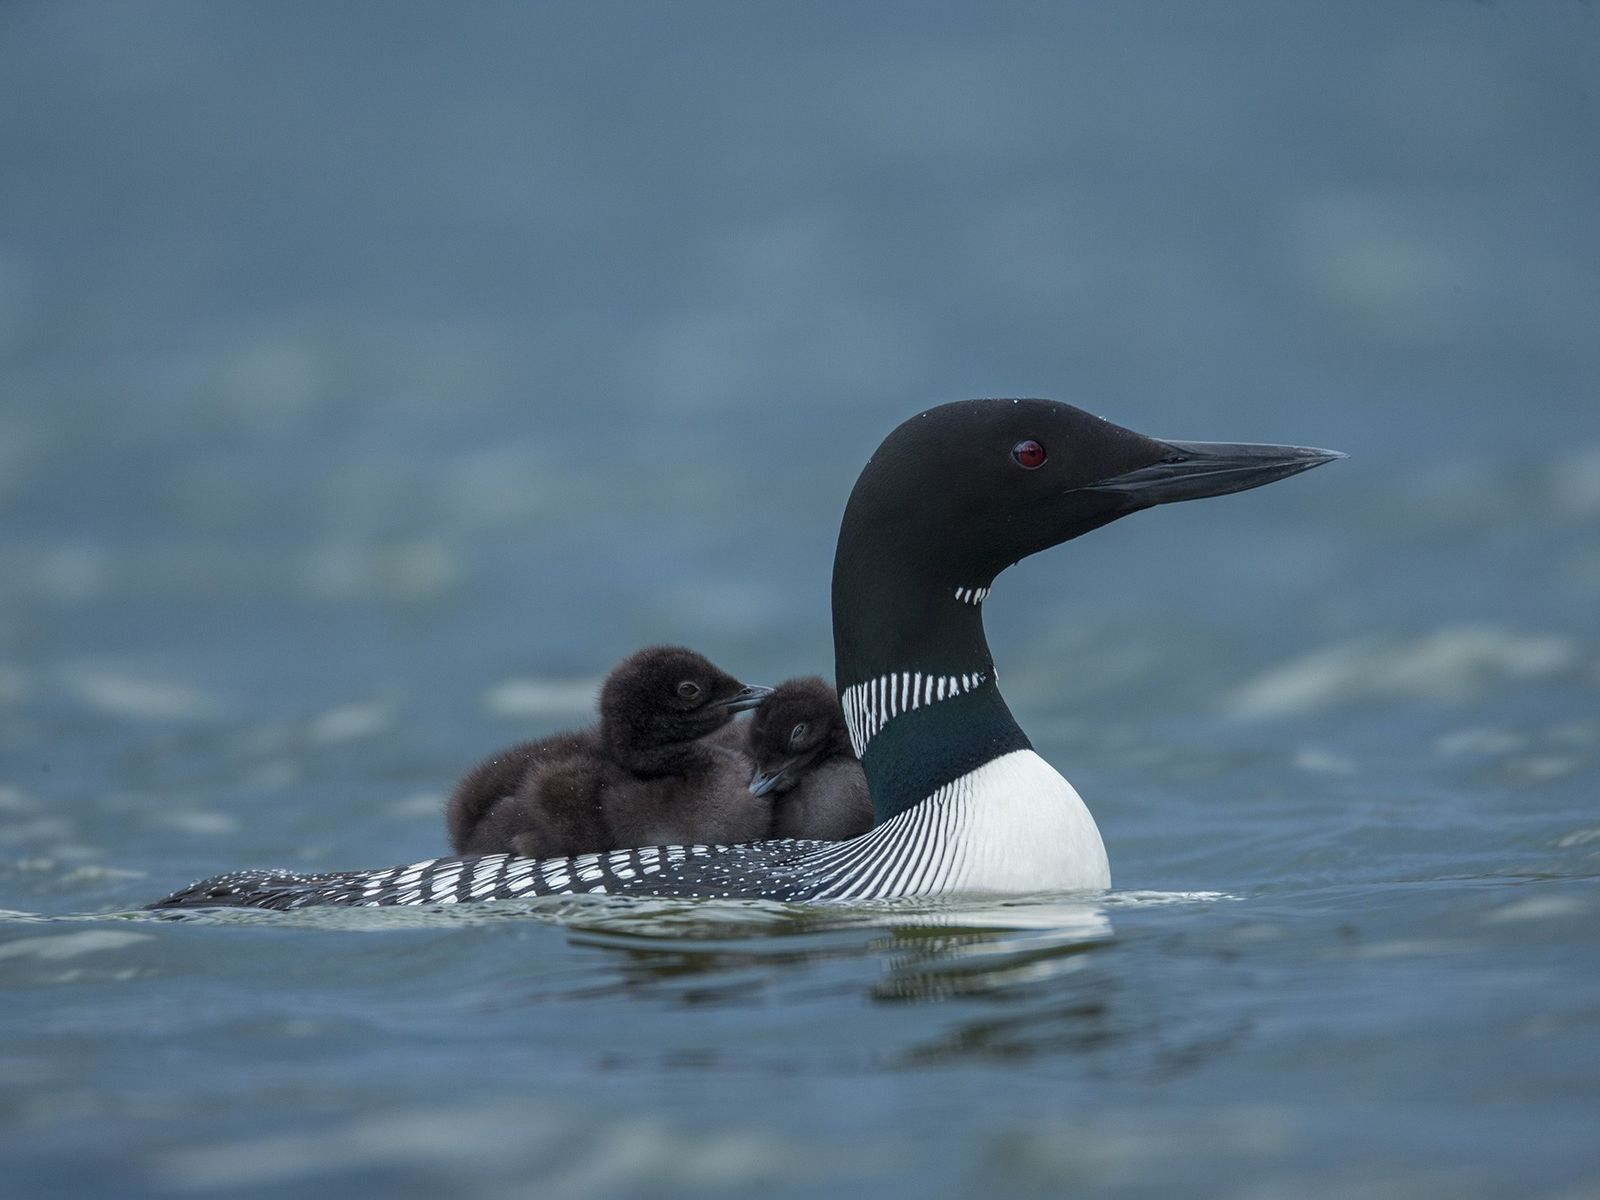 A loon and its brood. When threatened, this waterbird can become aggressive.